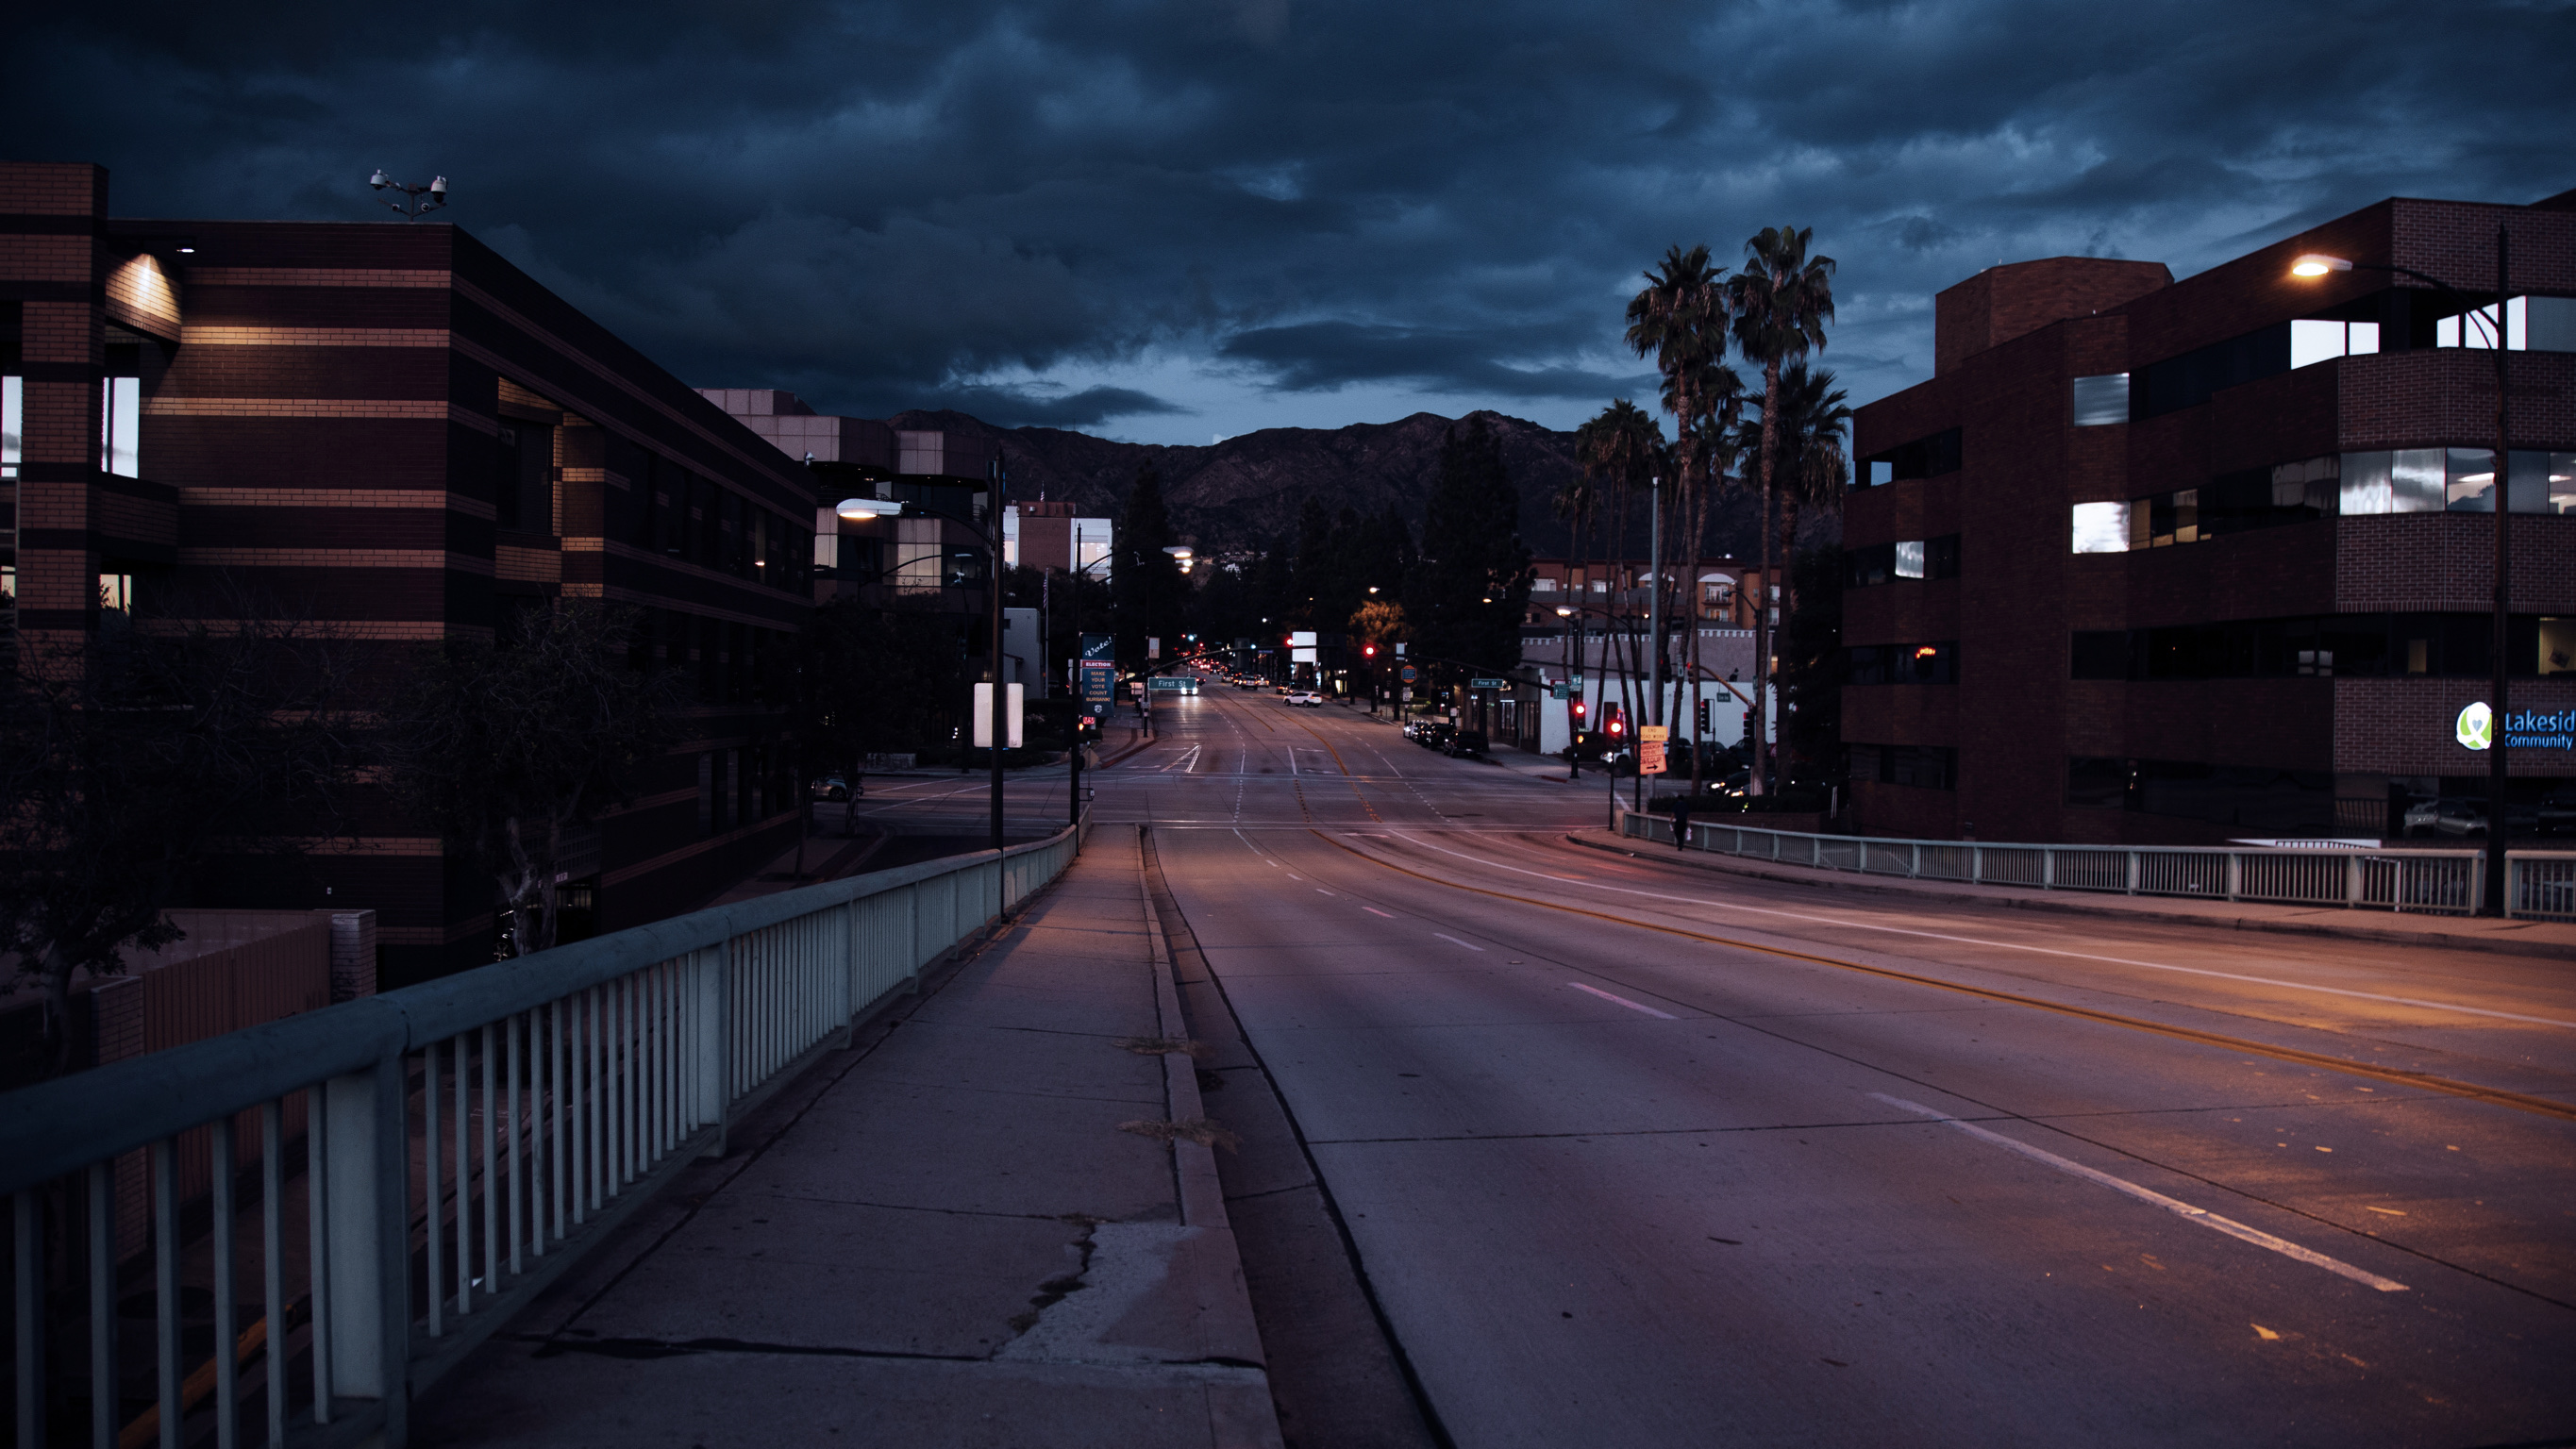 Nightfall in Burbank